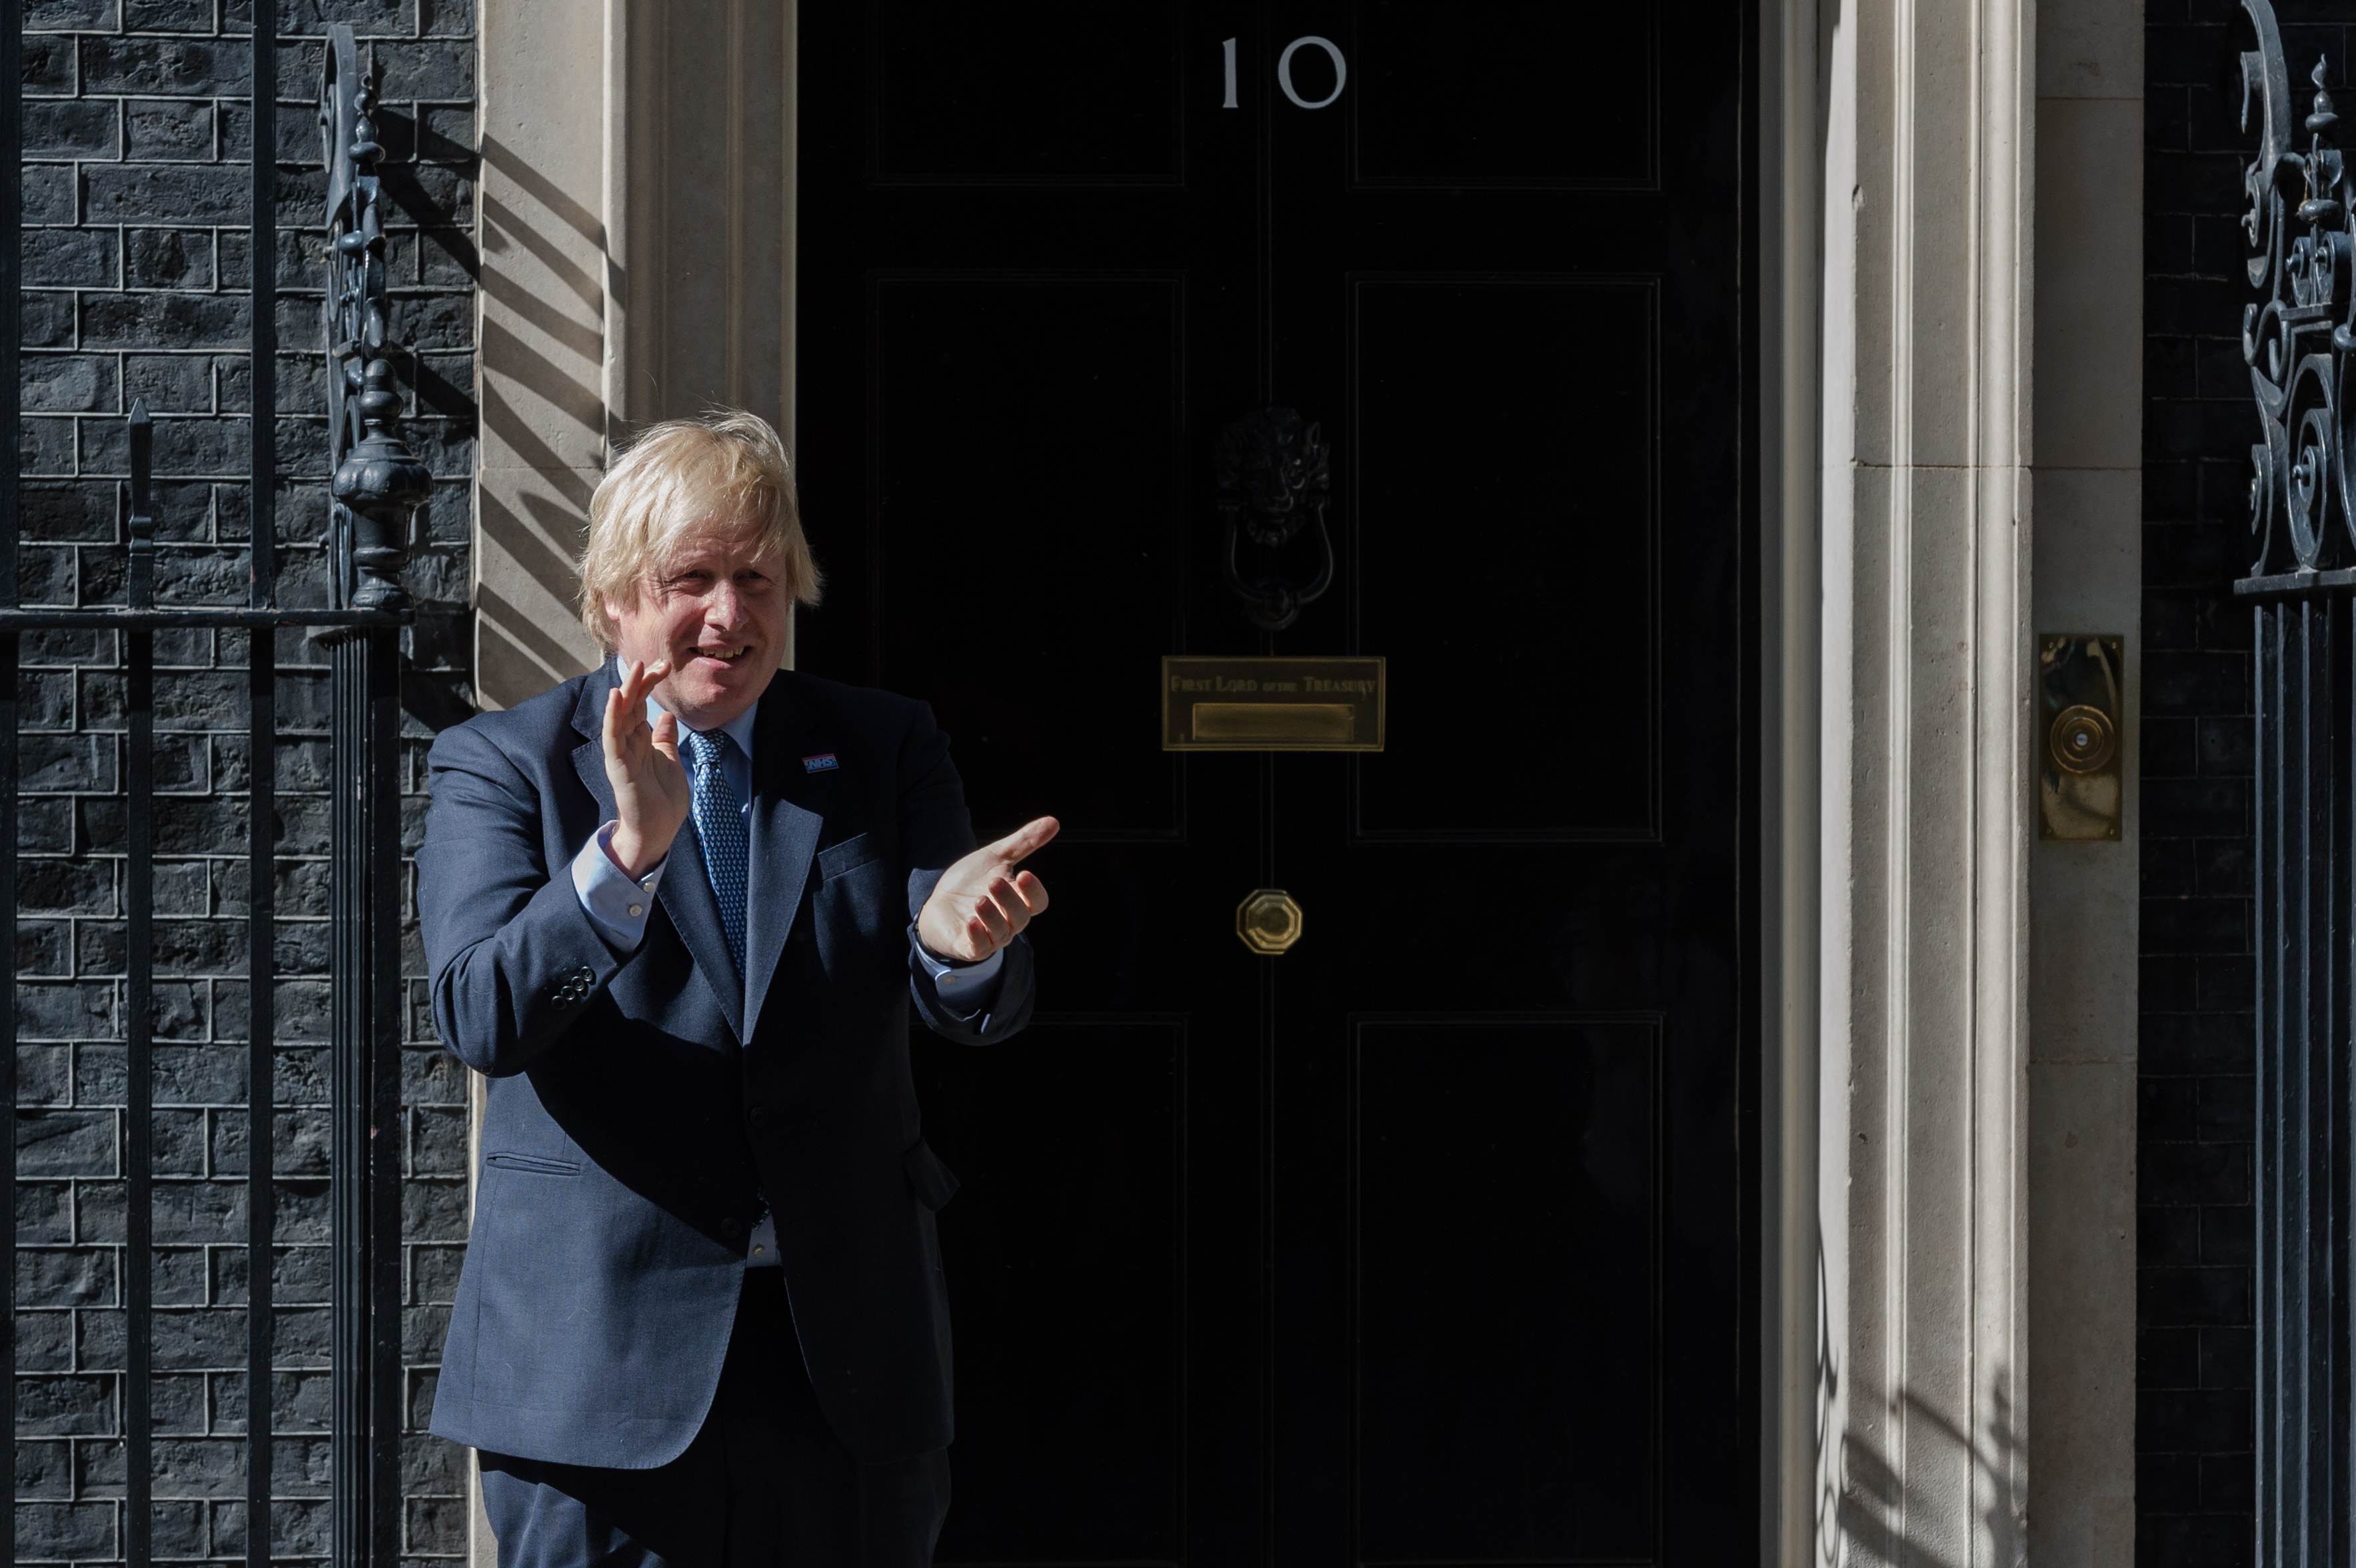 British Prime Minister Boris Johnson claps hands outside 10 Downing Street during the nationwide applause for the NHS staff on the 72nd anniversary of the launch of the National Health Service on 05 July, 2020 in London, England. (Photo by WIktor Szymanowicz/NurPhoto via Getty Images)